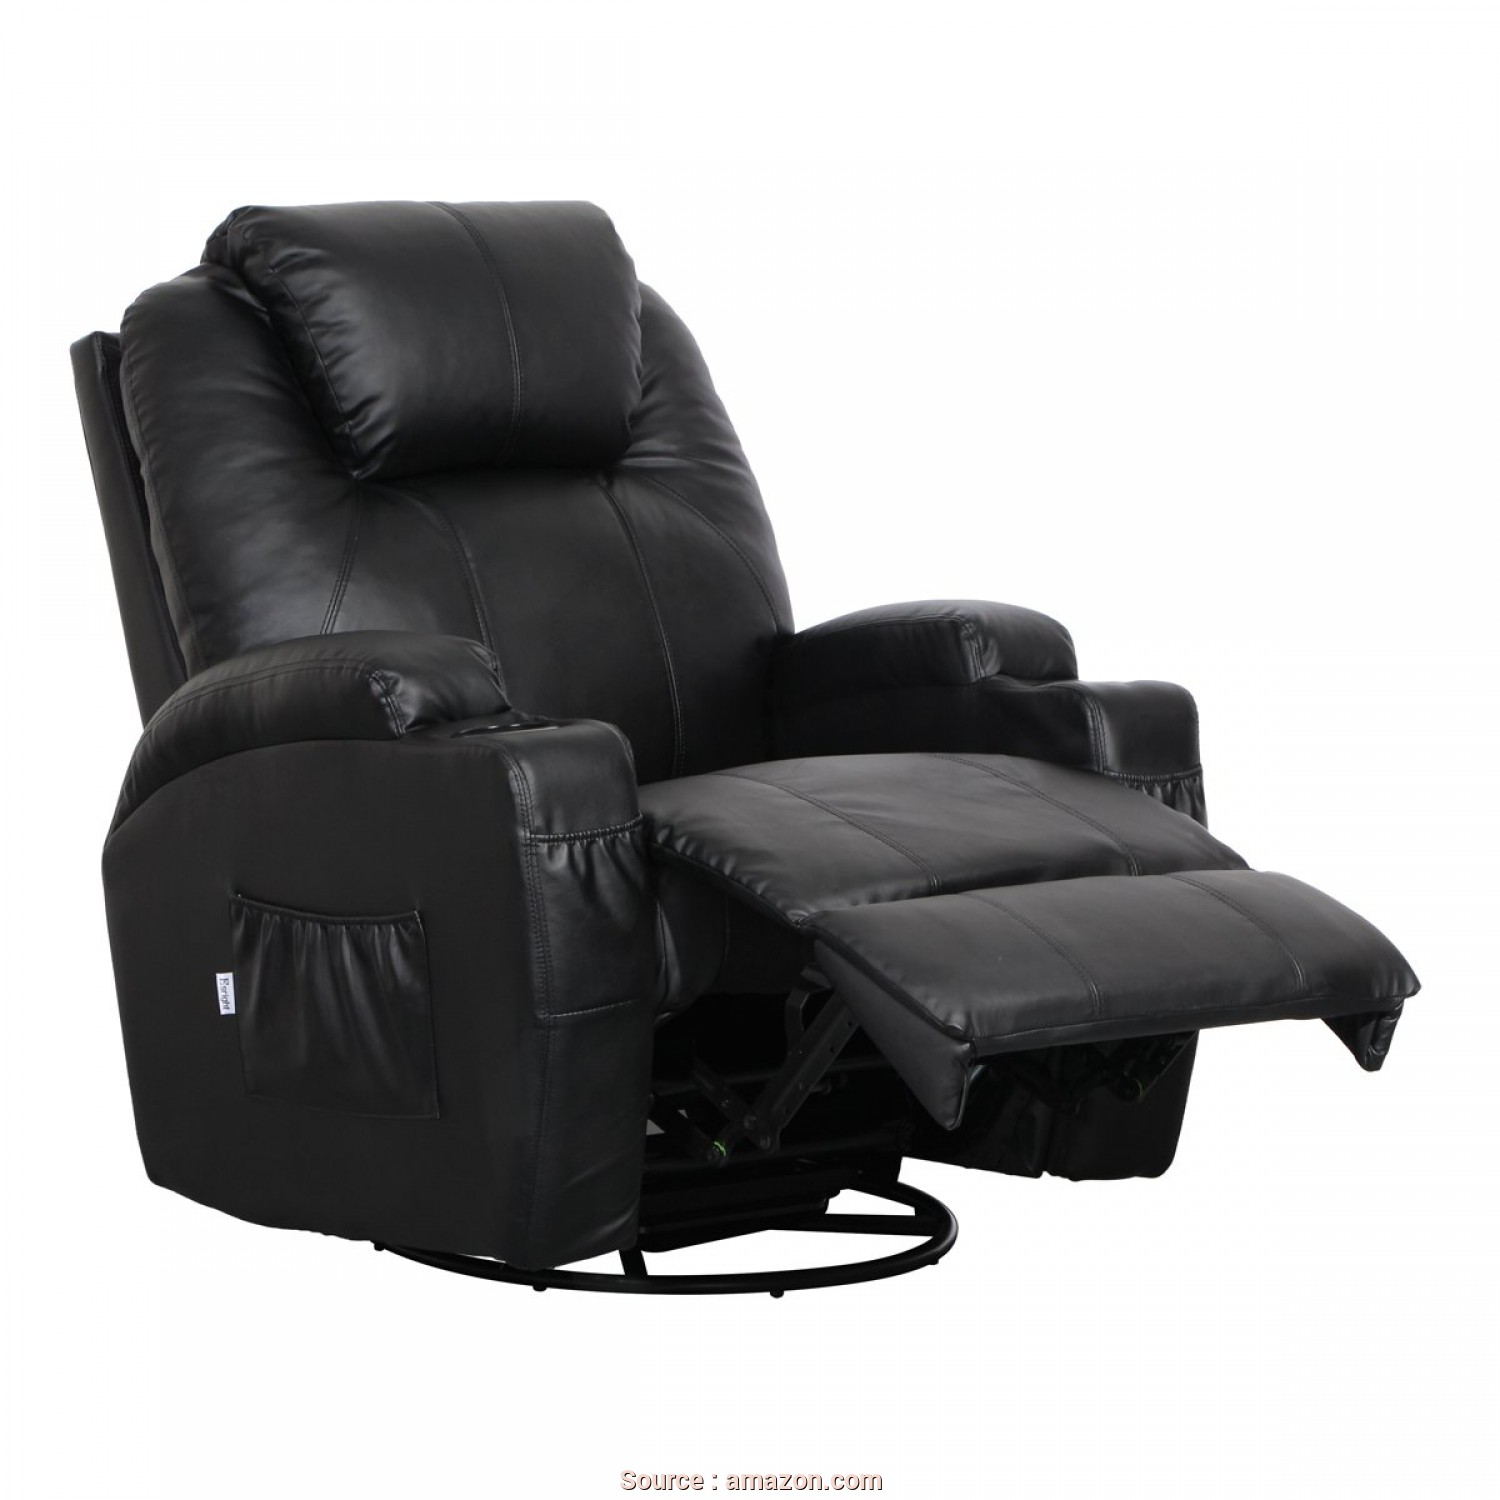 Divano Roma Furniture Relax Reclining Massage Chair, Grande Amazon.Com: Esright Massage Recliner Chair Heated PU Leather Ergonomic Lounge, Degree Swivel (Black): Kitchen & Dining